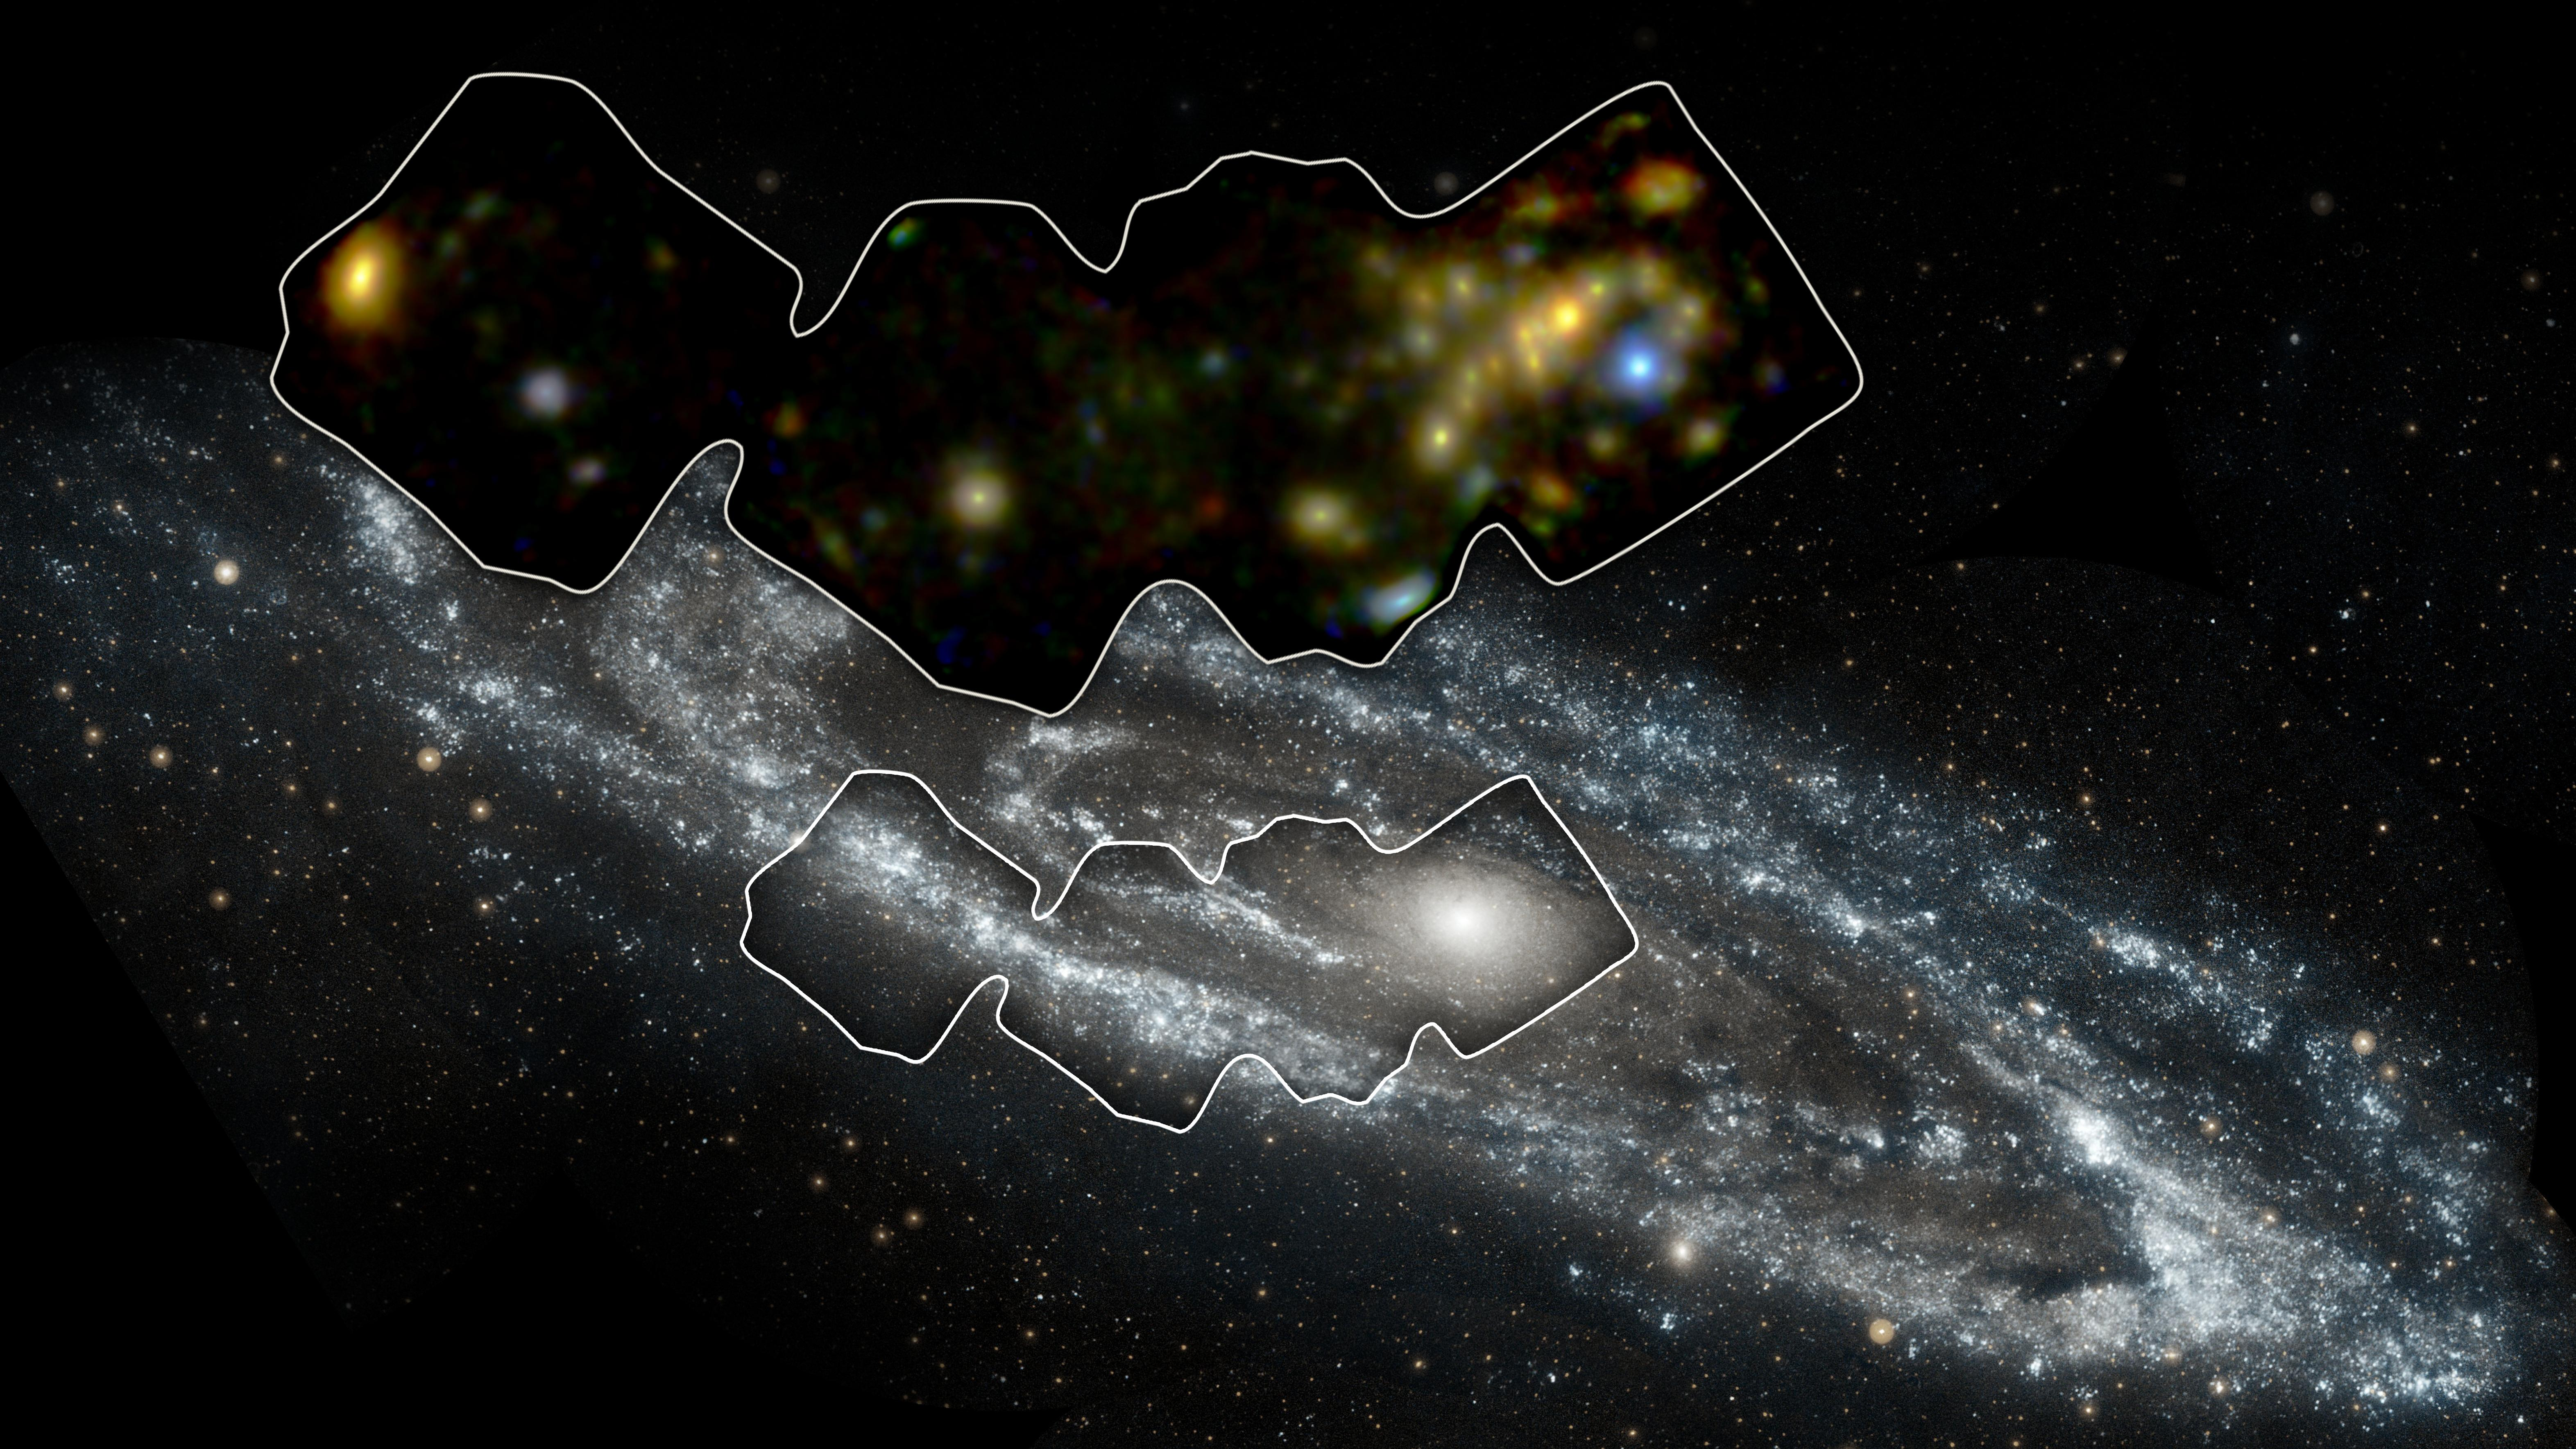 Nearby Black Holes Spied Gobbling Gas in Andromeda Galaxy (Photo)